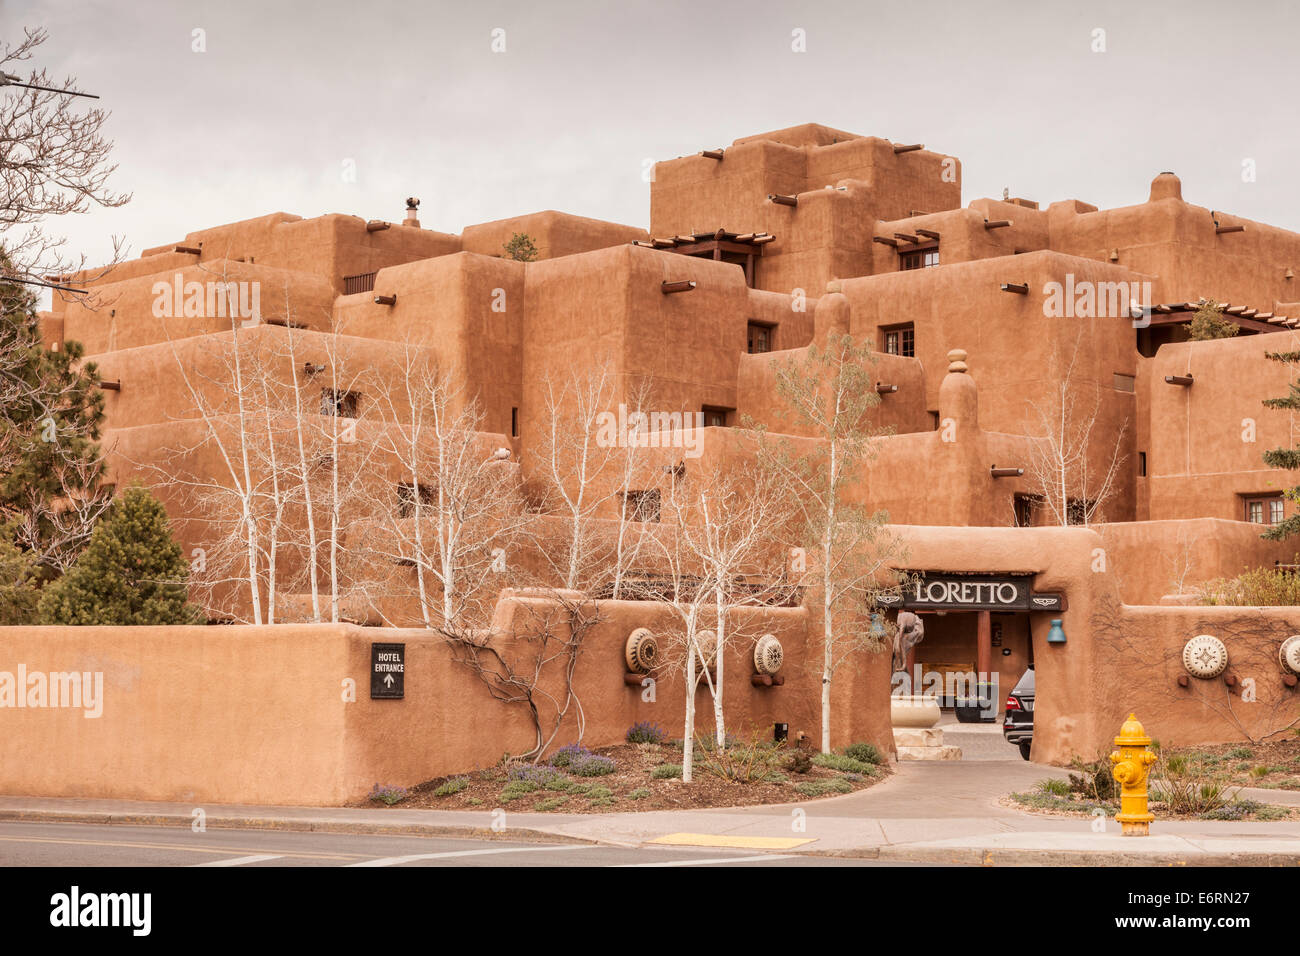 Inn and Spa at Loretto, a hotel in Santa Fe, New Maxico, built in traditional pueblo adobe style. - Stock Image